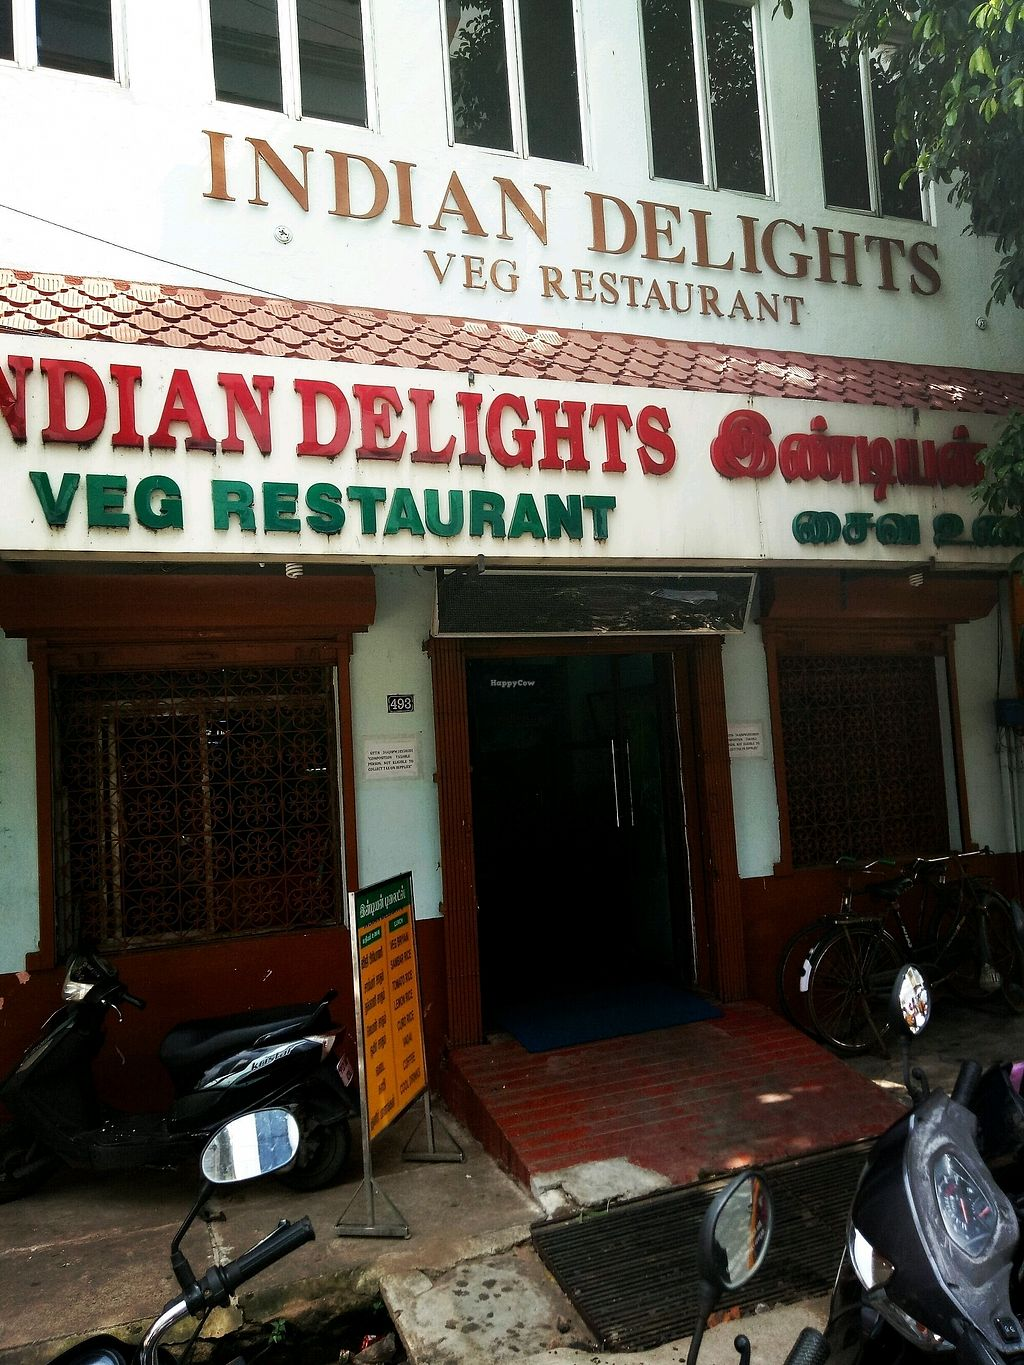 """Photo of Indian Delights  by <a href=""""/members/profile/Pazzodaprile"""">Pazzodaprile</a> <br/>entrance  <br/> December 5, 2017  - <a href='/contact/abuse/image/106559/332360'>Report</a>"""